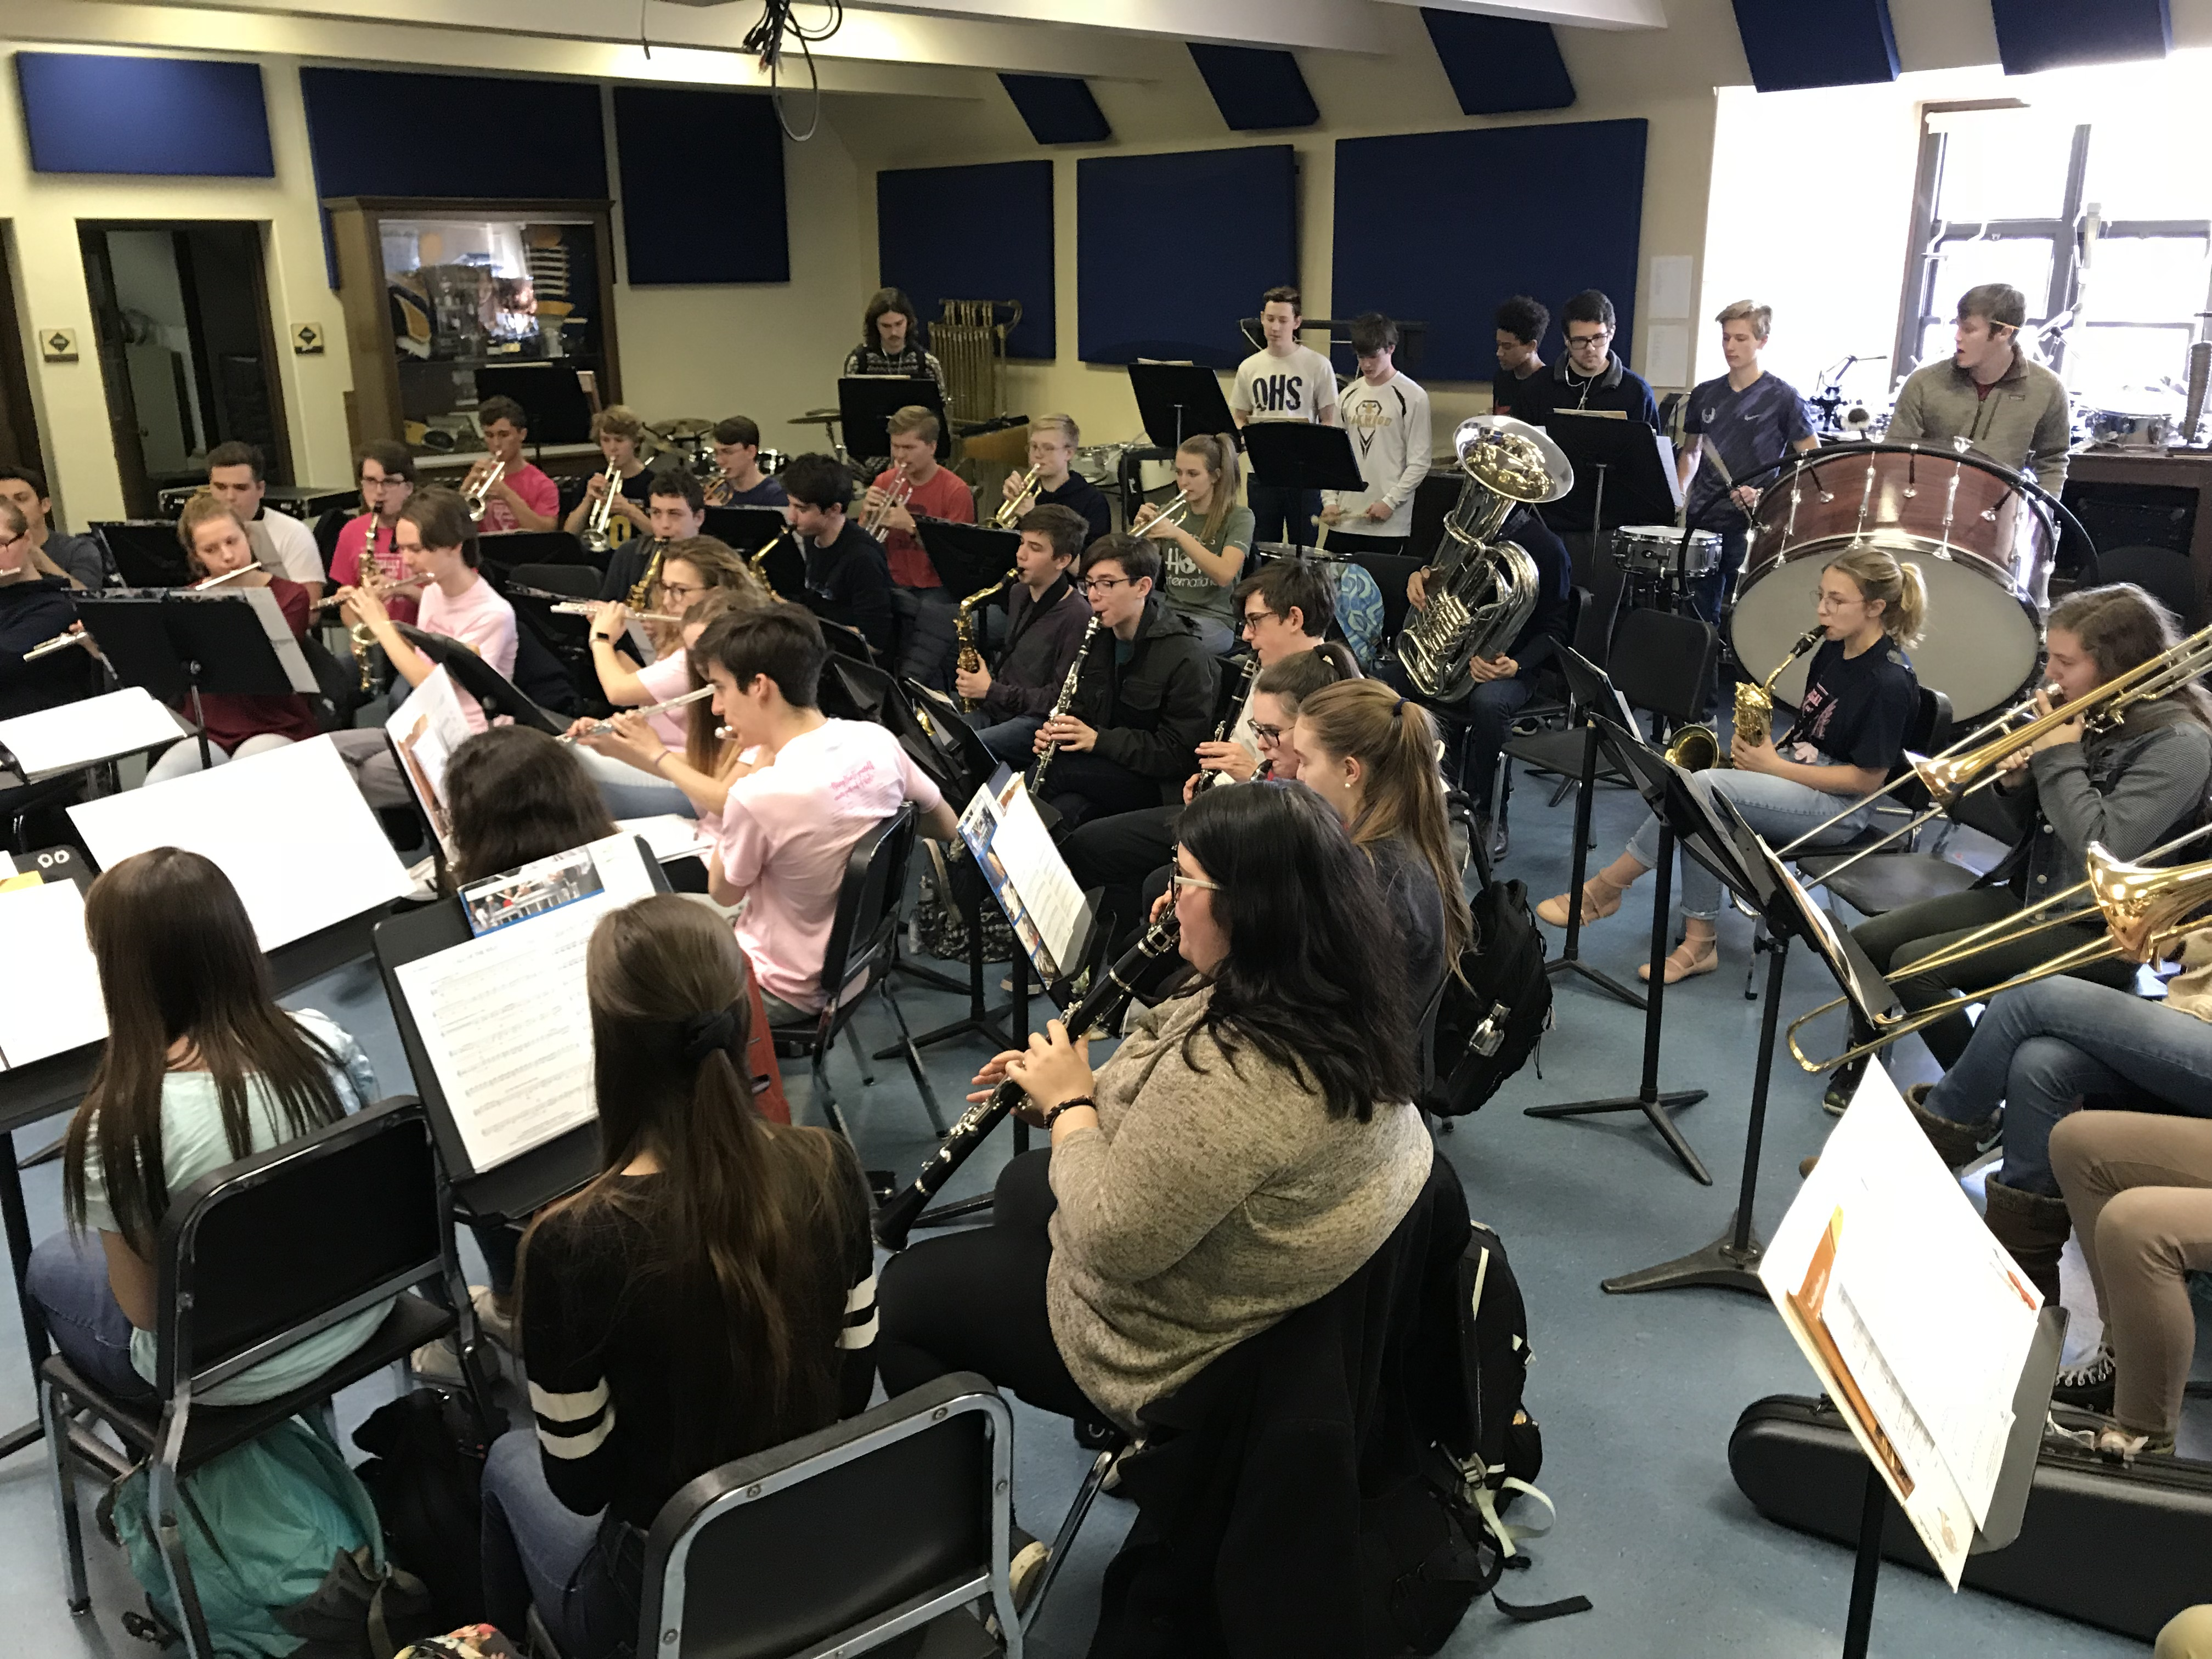 Students practicing in the band room